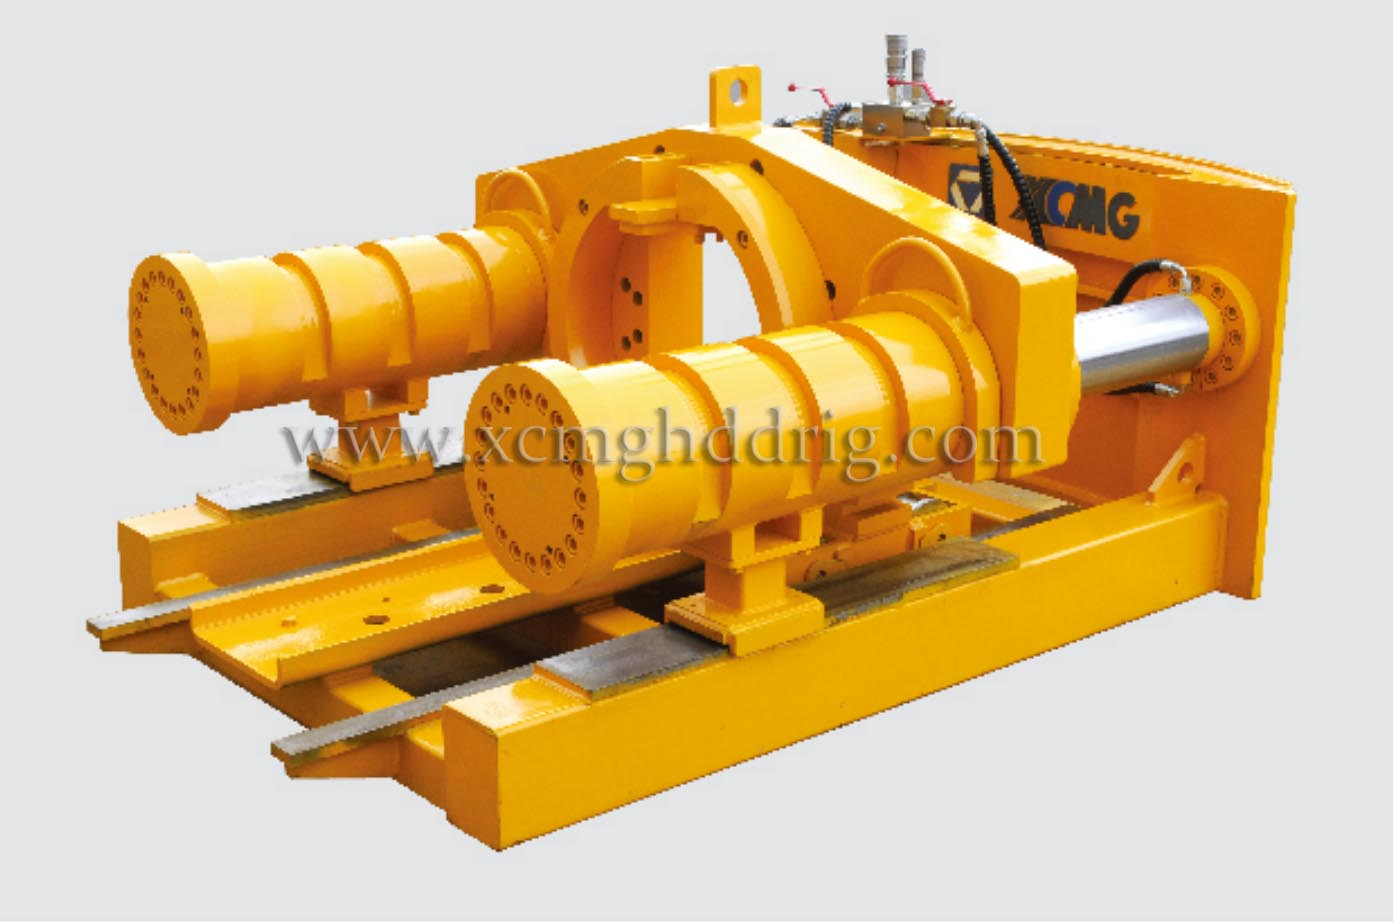 xdn500 GRP microtunnel machine